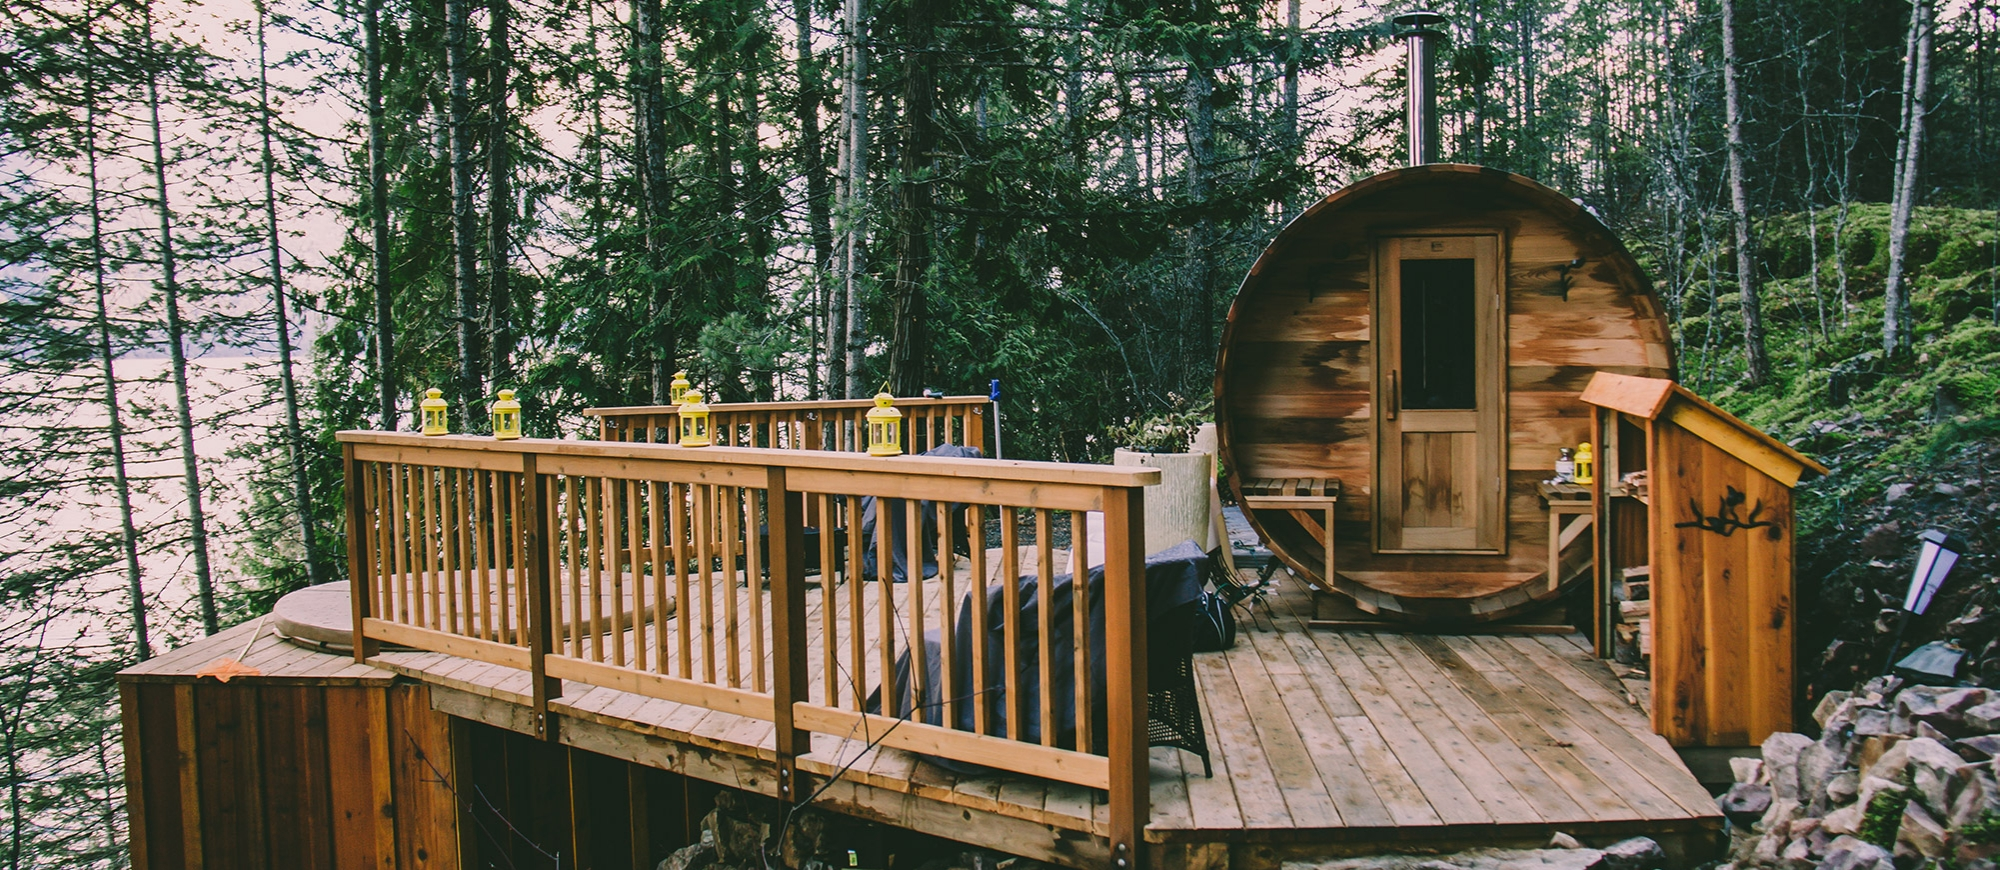 A cylindrical cabin next to a hot tub set into a wooden deck, overlooking Kootenay Lake